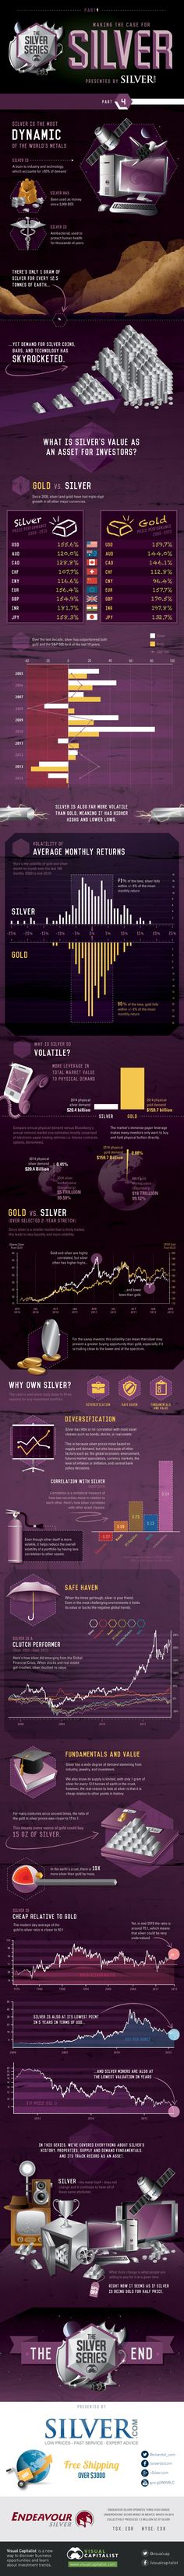 Making the Case for Silver as an Asset